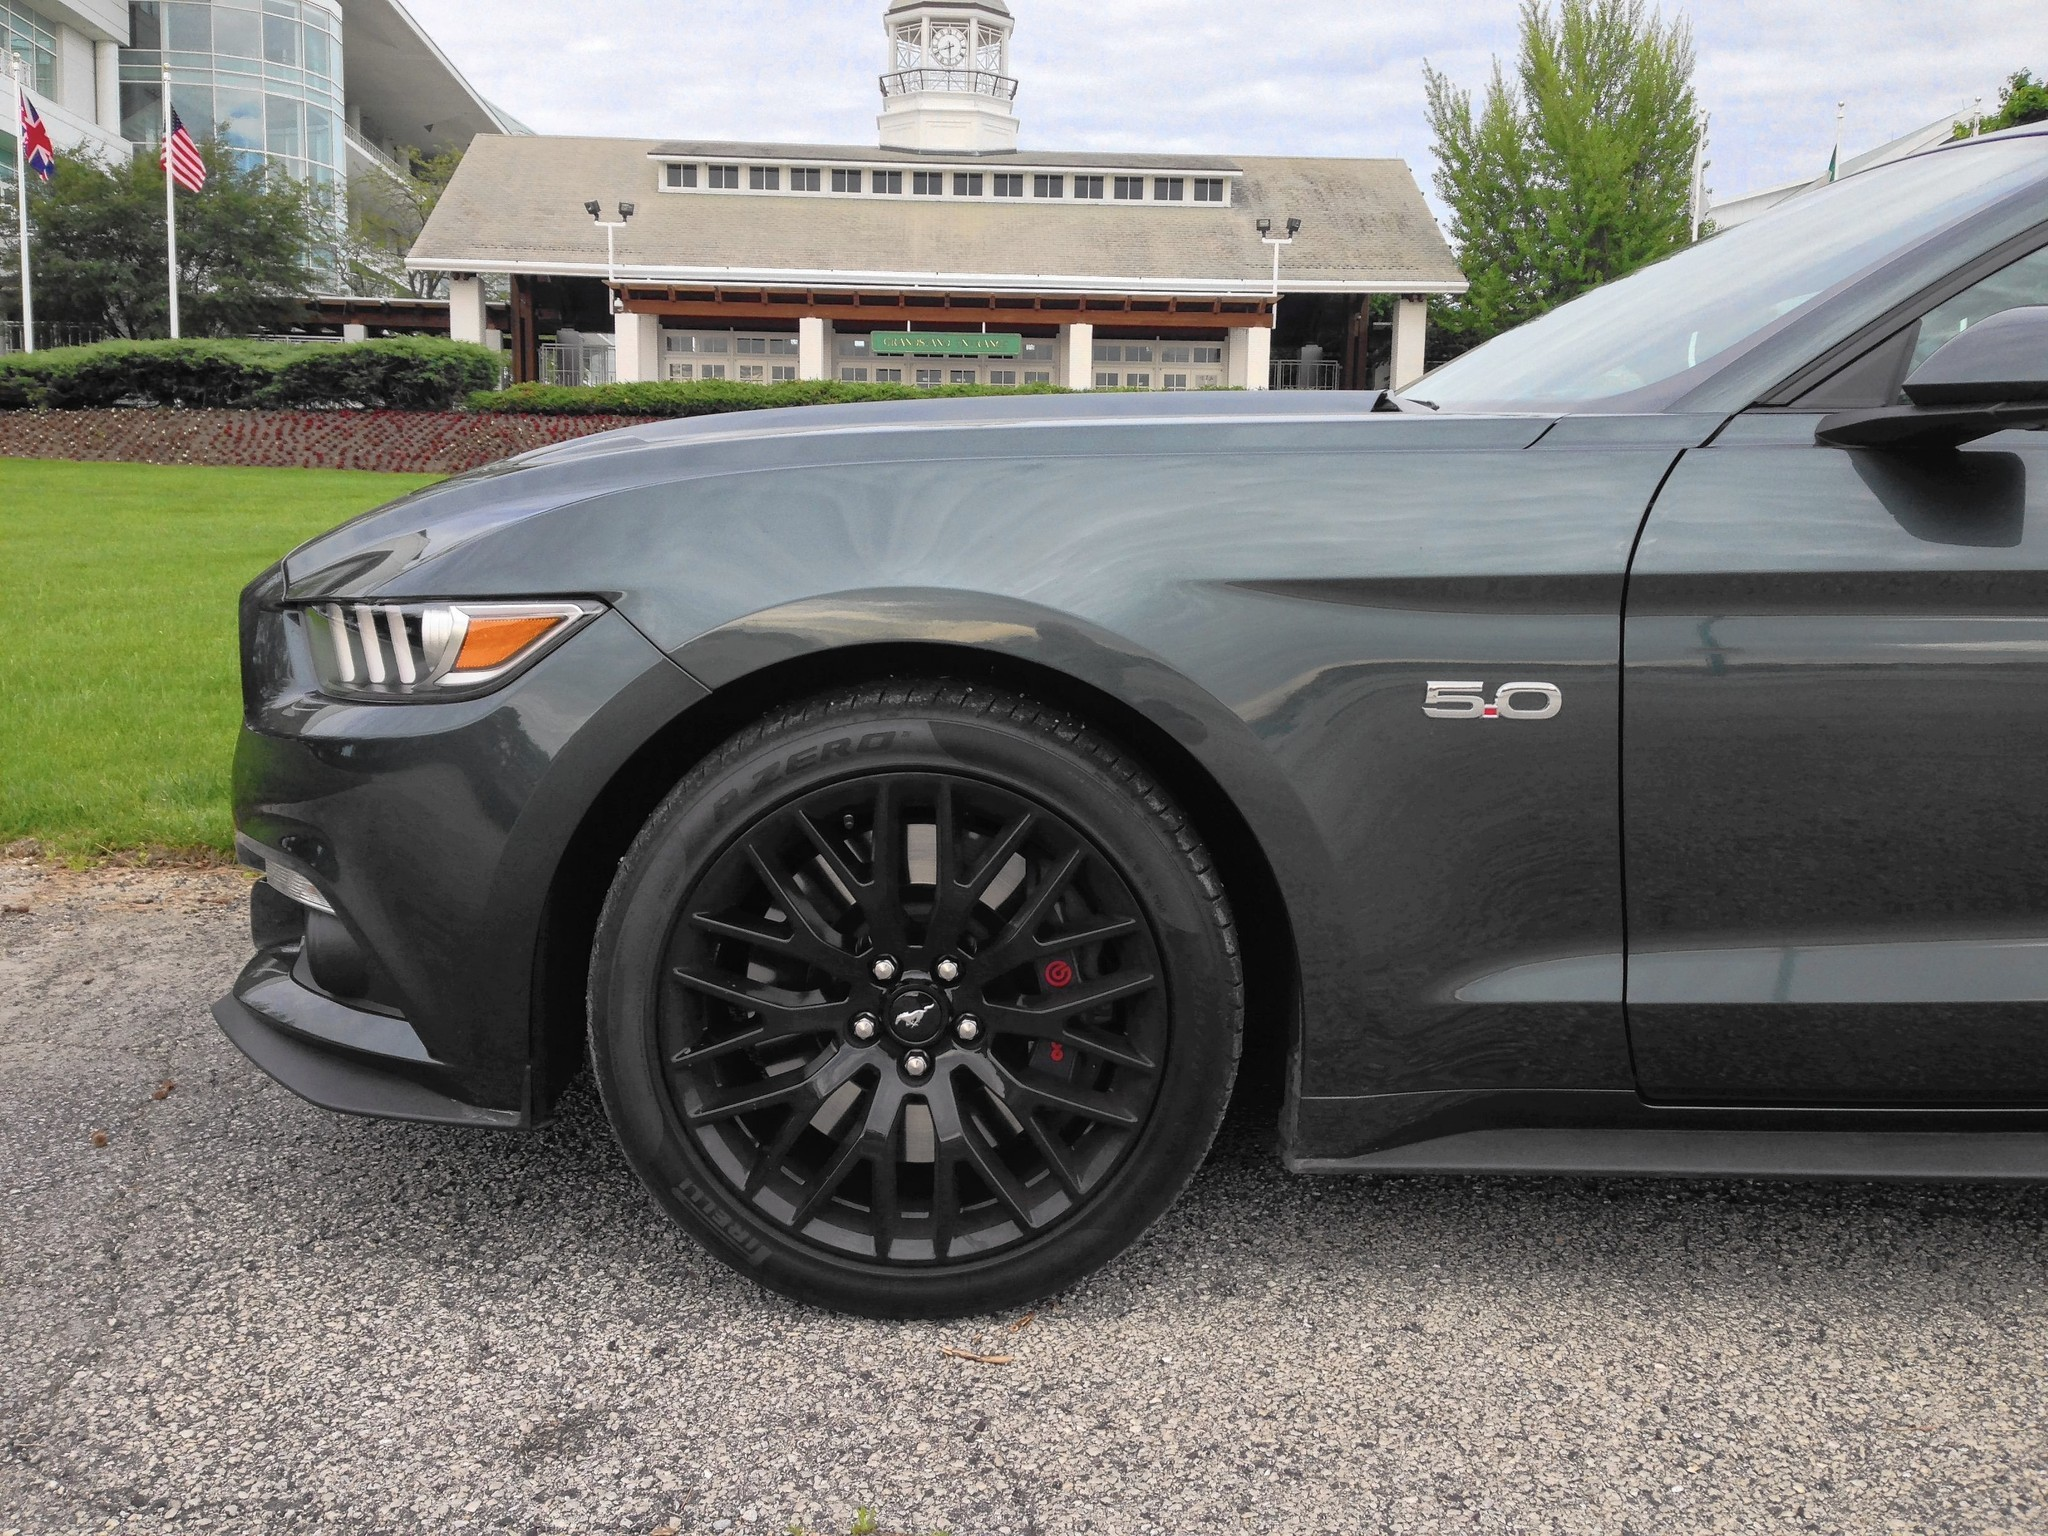 2015 Ford Mustang 50 Is The Best Pony Car Yet Chicago Tribune Gt Engine